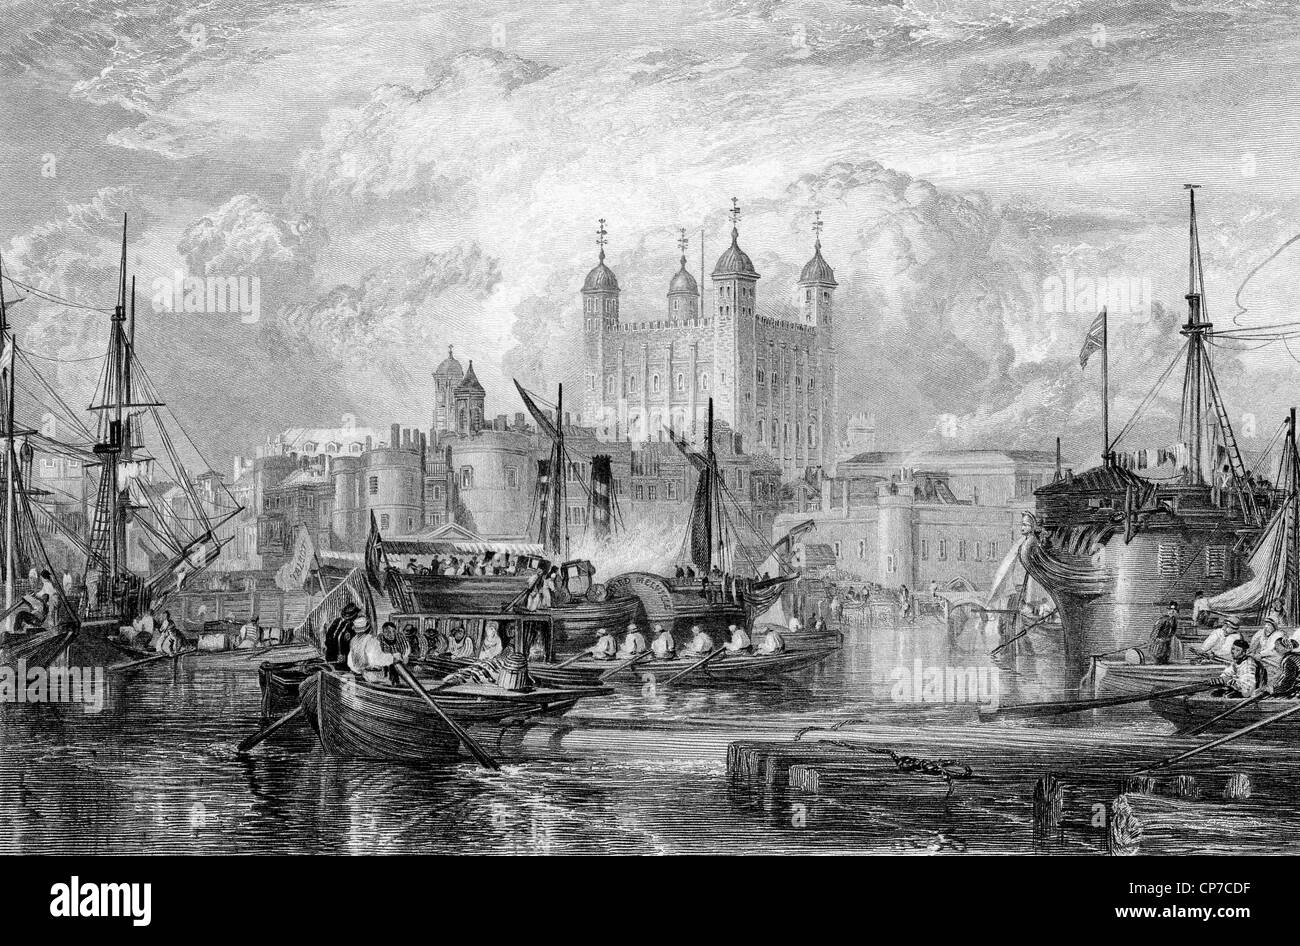 Tower of London with ships in port on River Thames, England, Engraved by William Miller in 1832. - Stock Image